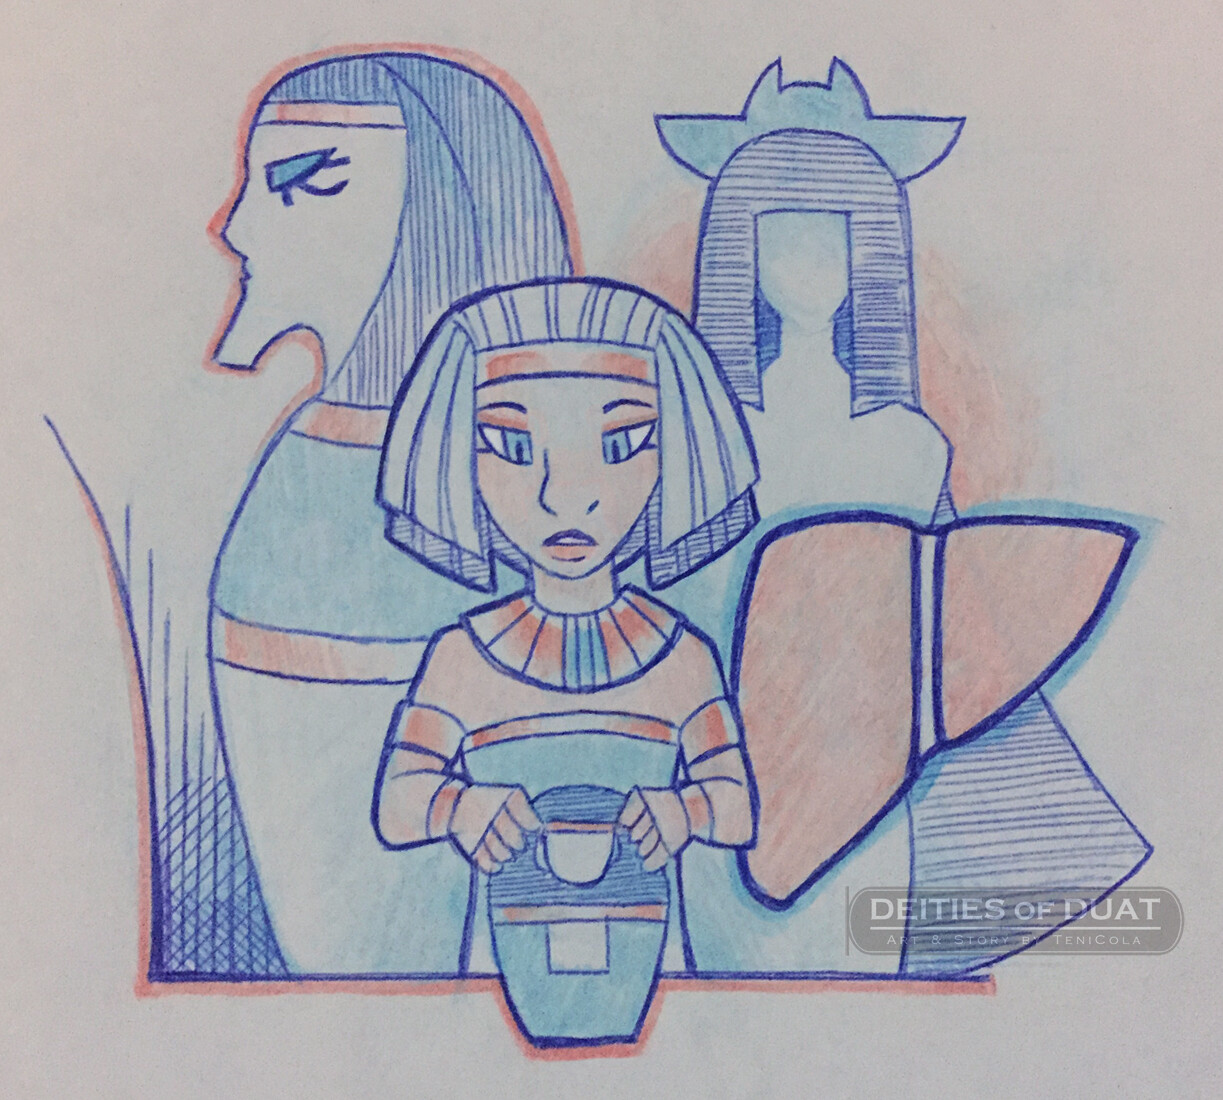 IMSETY -- One of the Four Sons of Horus, who guards the liver and represents the South.